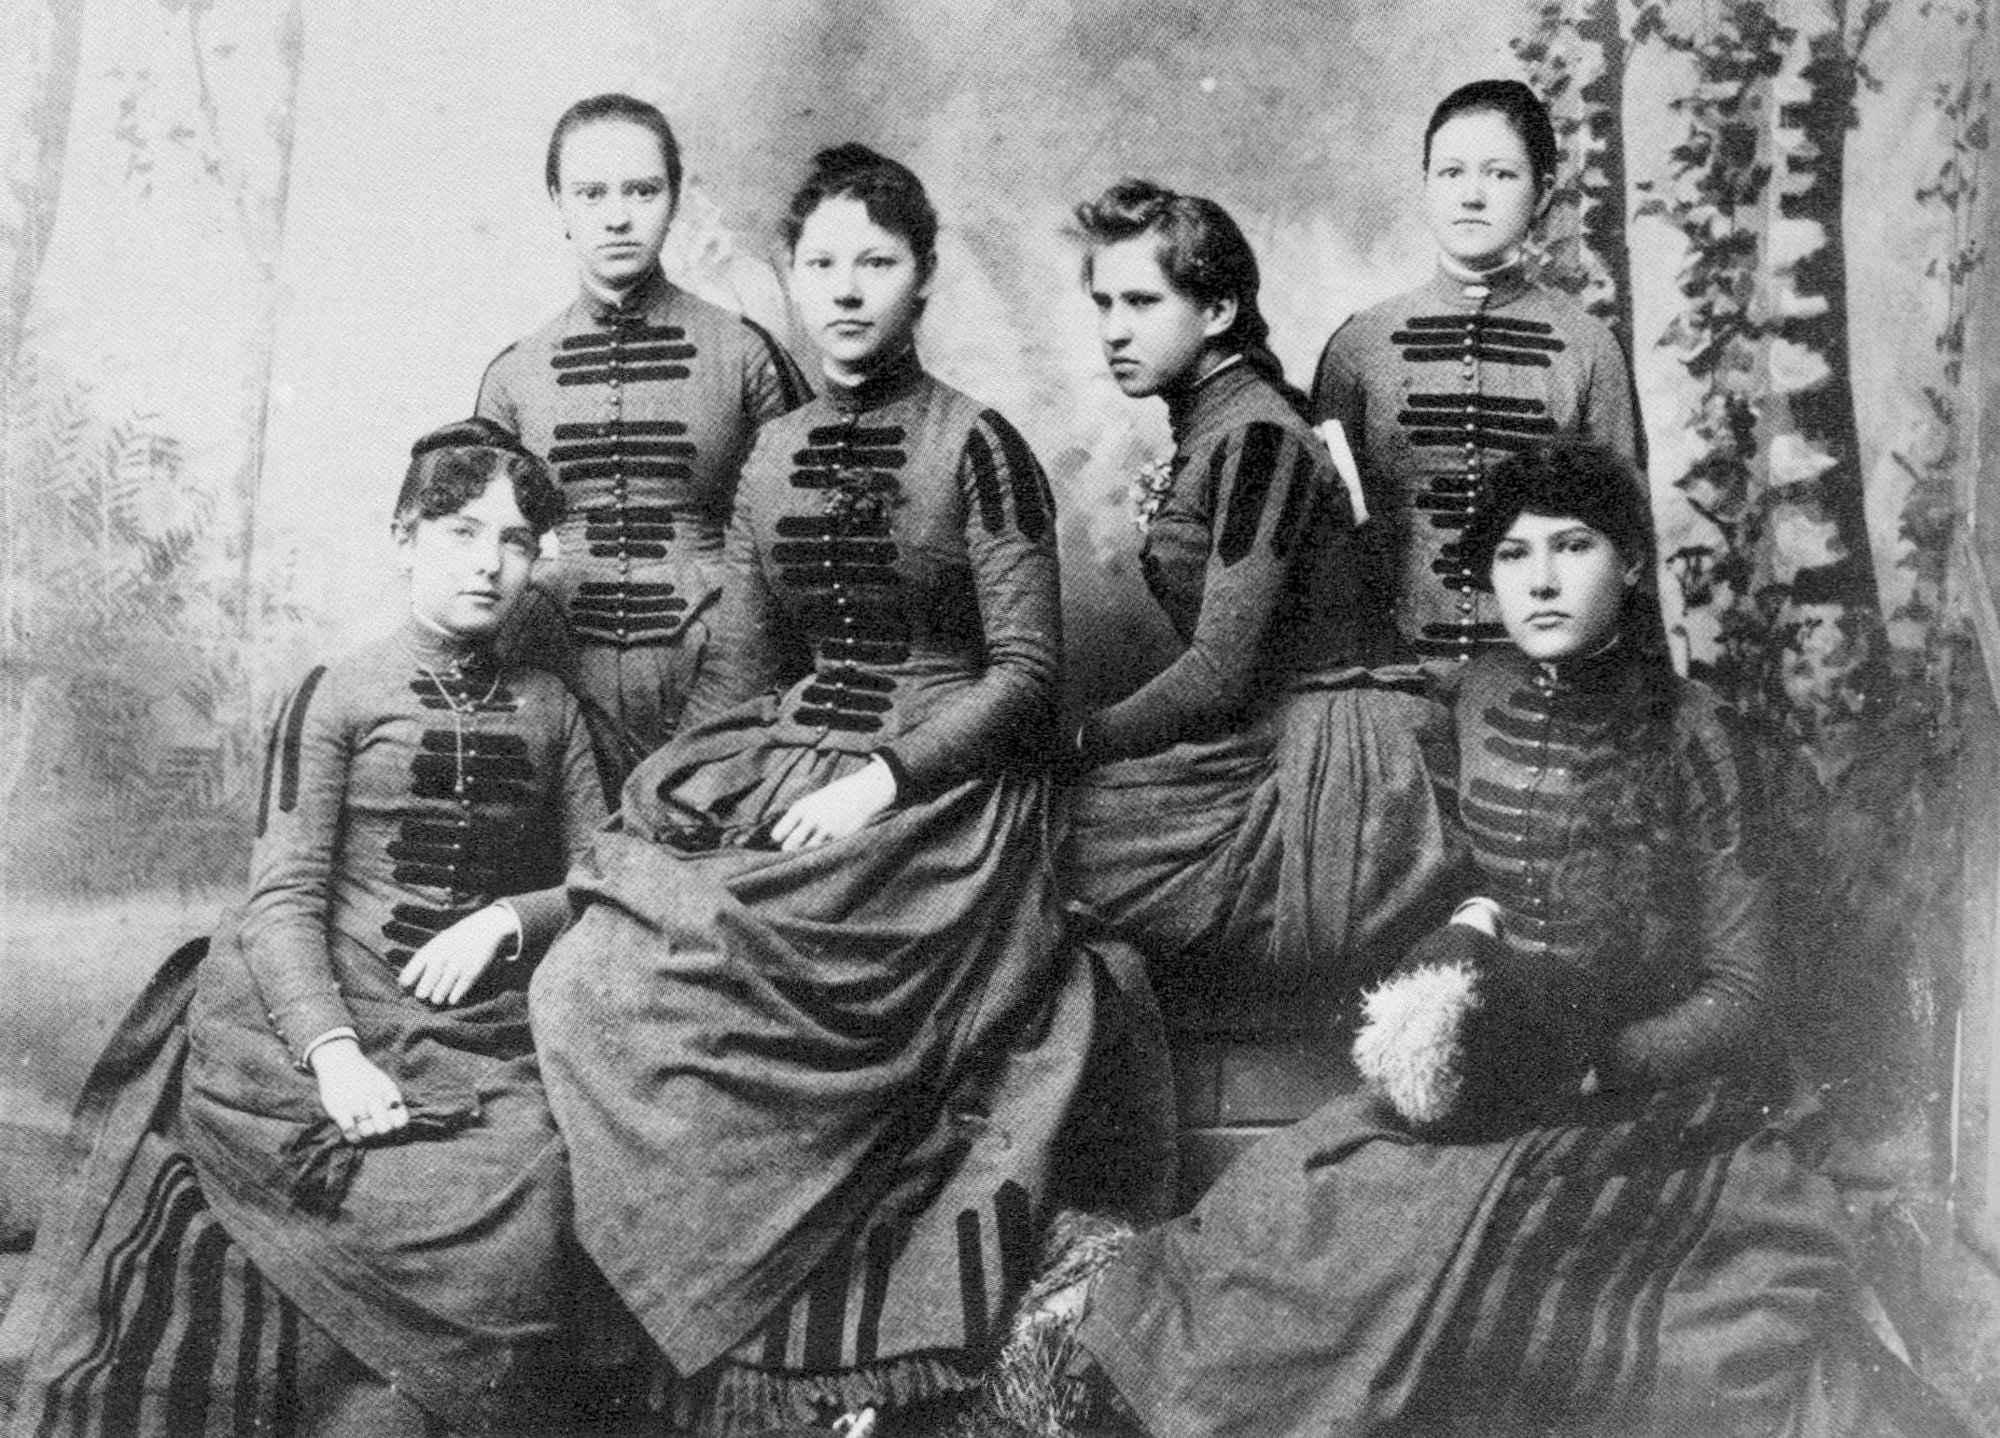 Sumter Female Institute graduating class of 1888 poses for a photo. The boarding school for women was founded in 1868 by Mrs. L.A. Brown and Eliza Cooper. It was on the north corner of Washington and Calhoun streets. The school ended operations at the turn of the century. Those graduating in 1888 were, from left, Fannie McKogen, Verdie Anderson, Catherine McLaurin, Mamie Edmunds, Hannah Fraser and Annie Grahm.    museum photo - john poindexter